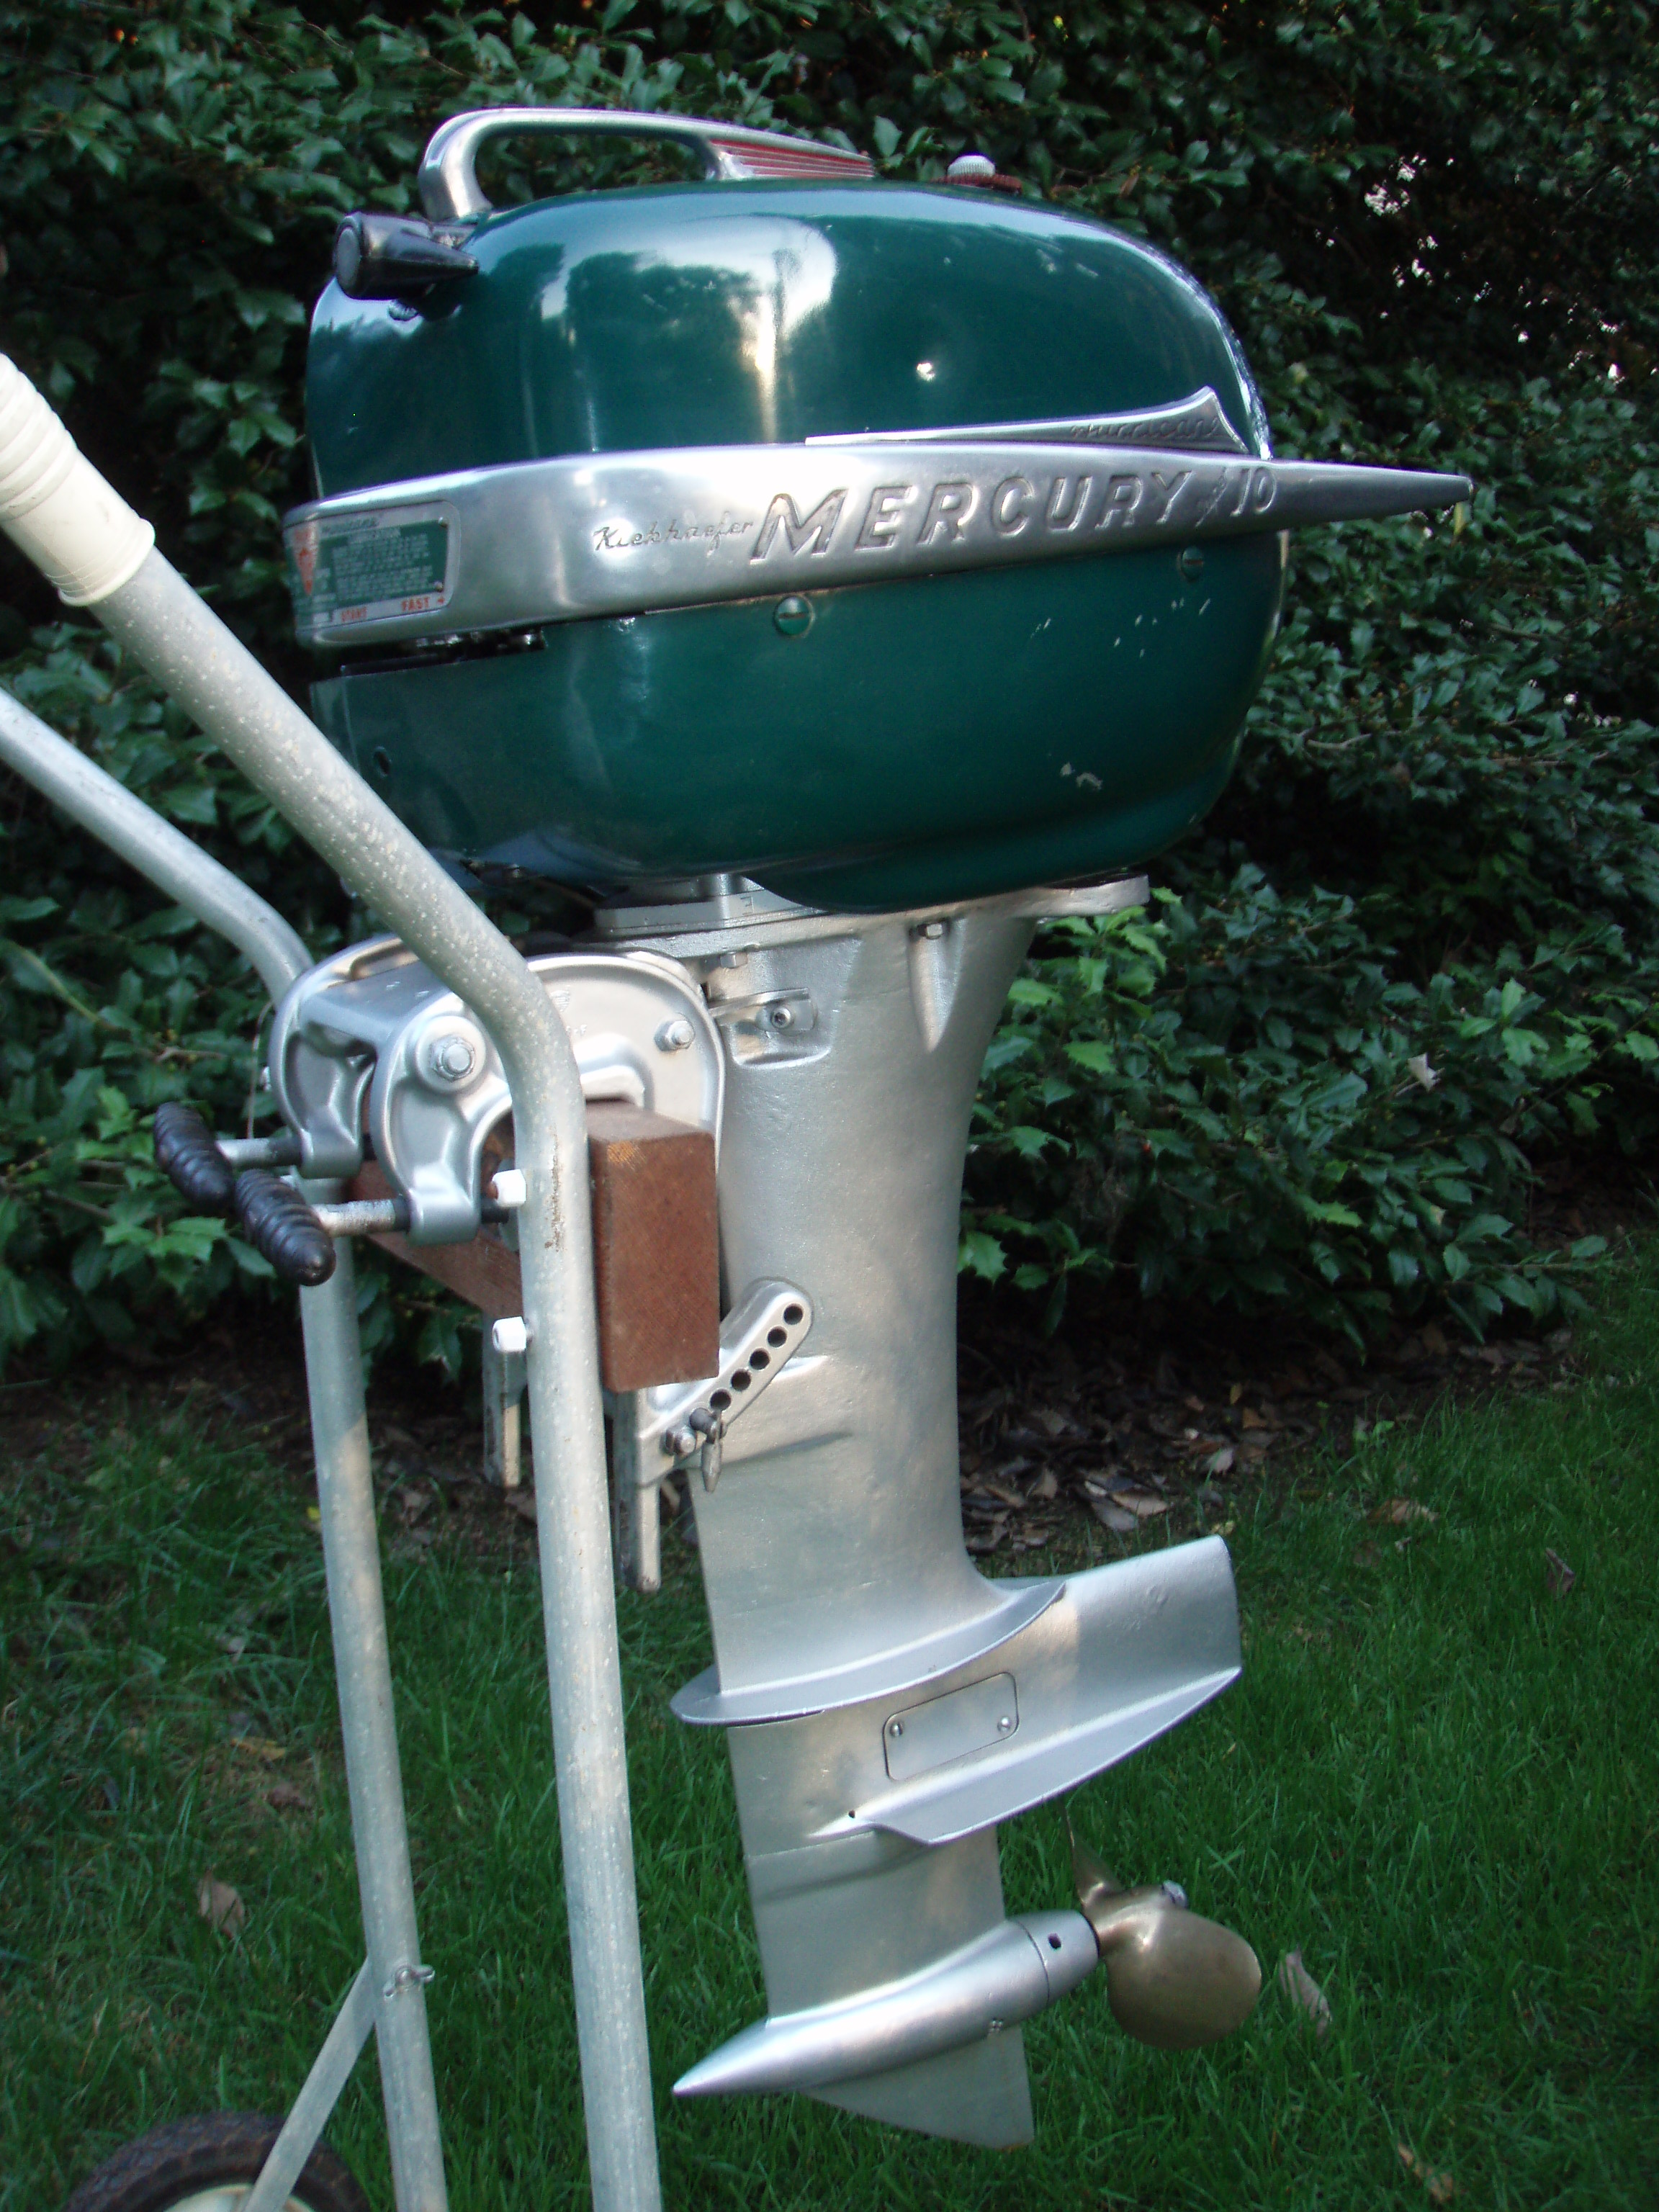 Mercury Outboard Motors Craigslist Used Outboard Motors